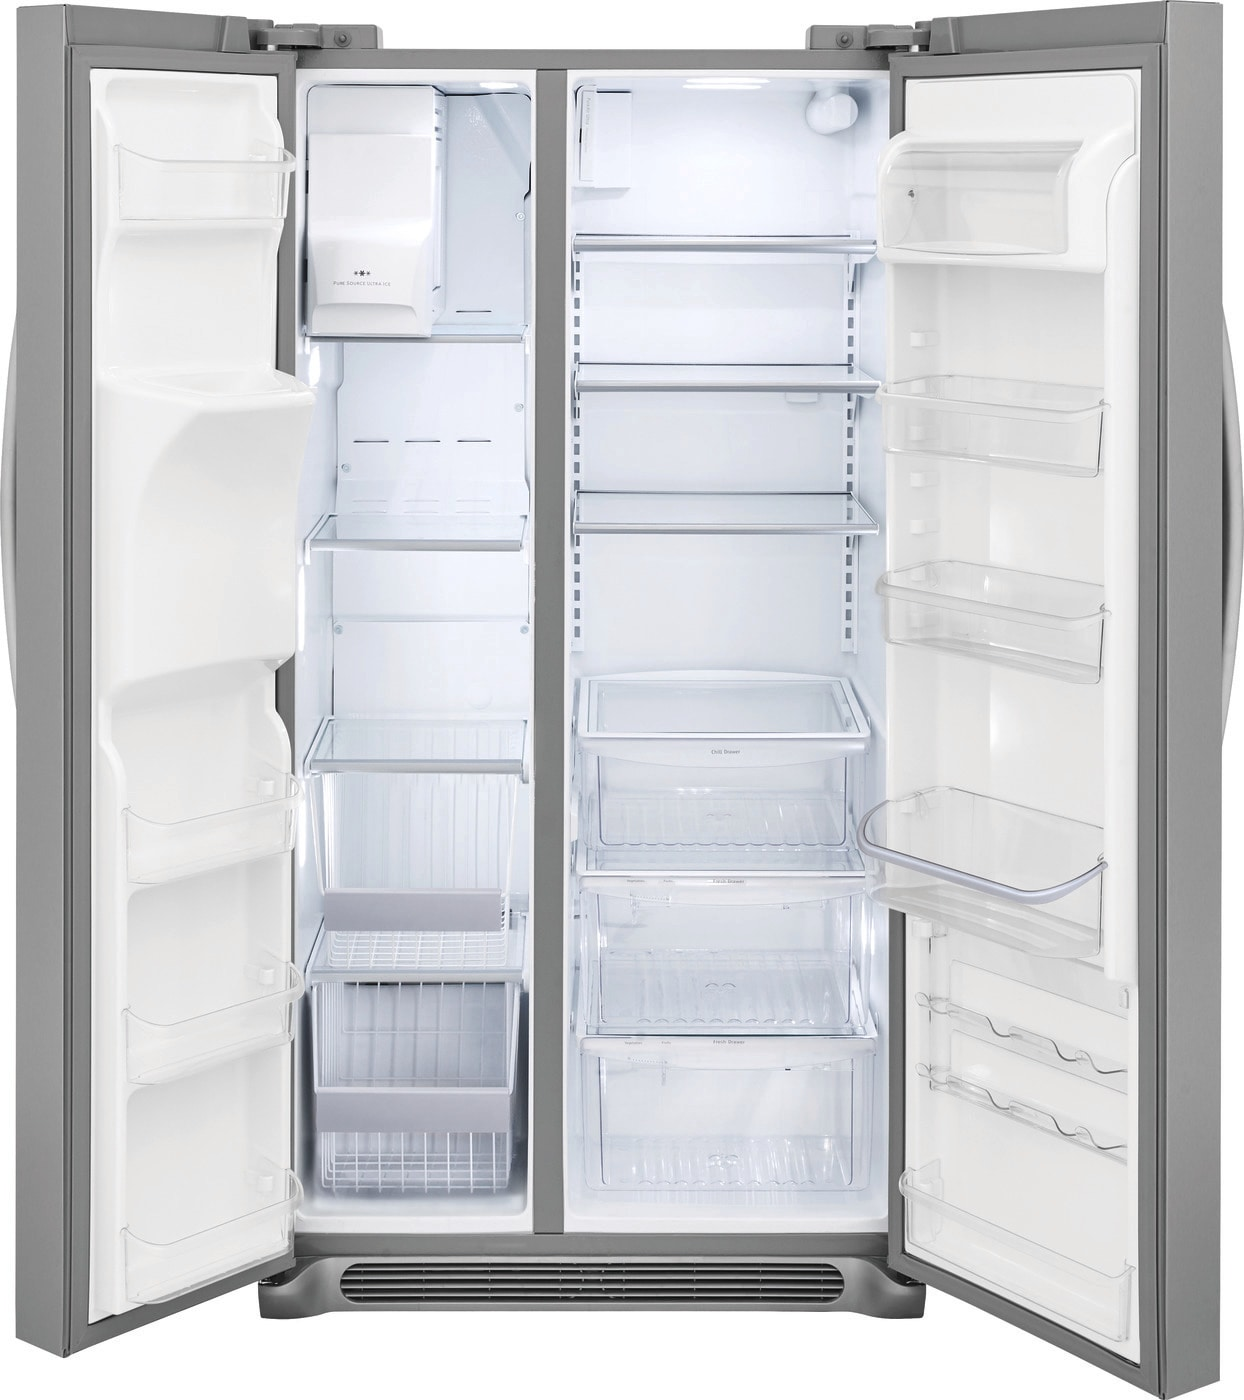 22.2 Cu. Ft. Counter-Depth Side-by-Side Refrigerator Stainless Steel FGSC2335TF